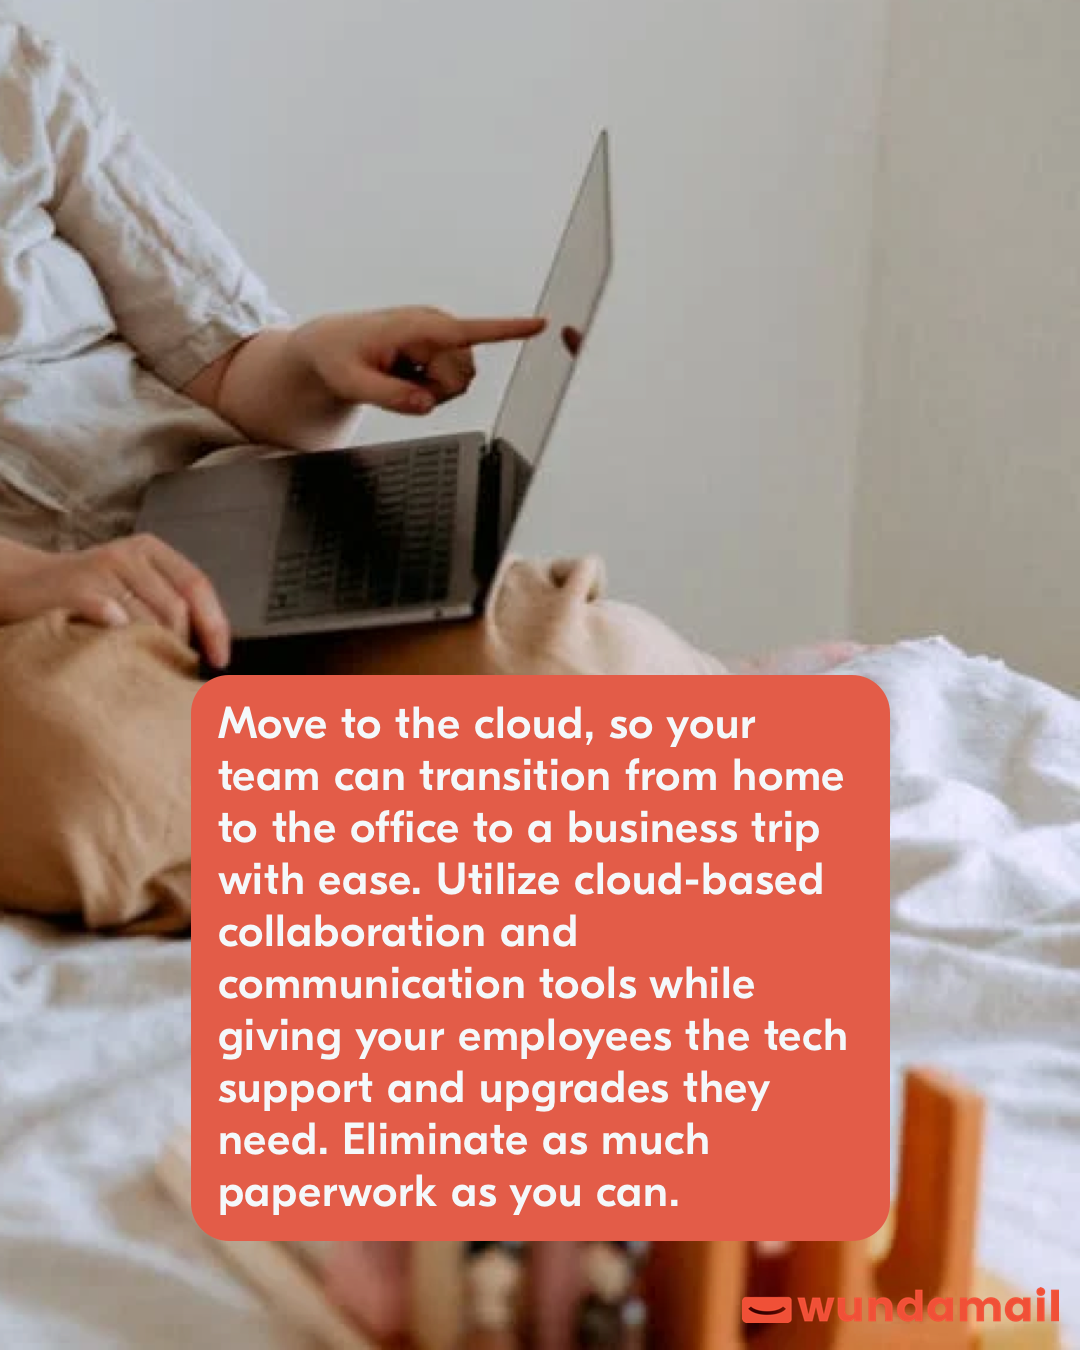 Move to the cloud, so your team can transition from home to the office to a business trip with ease.